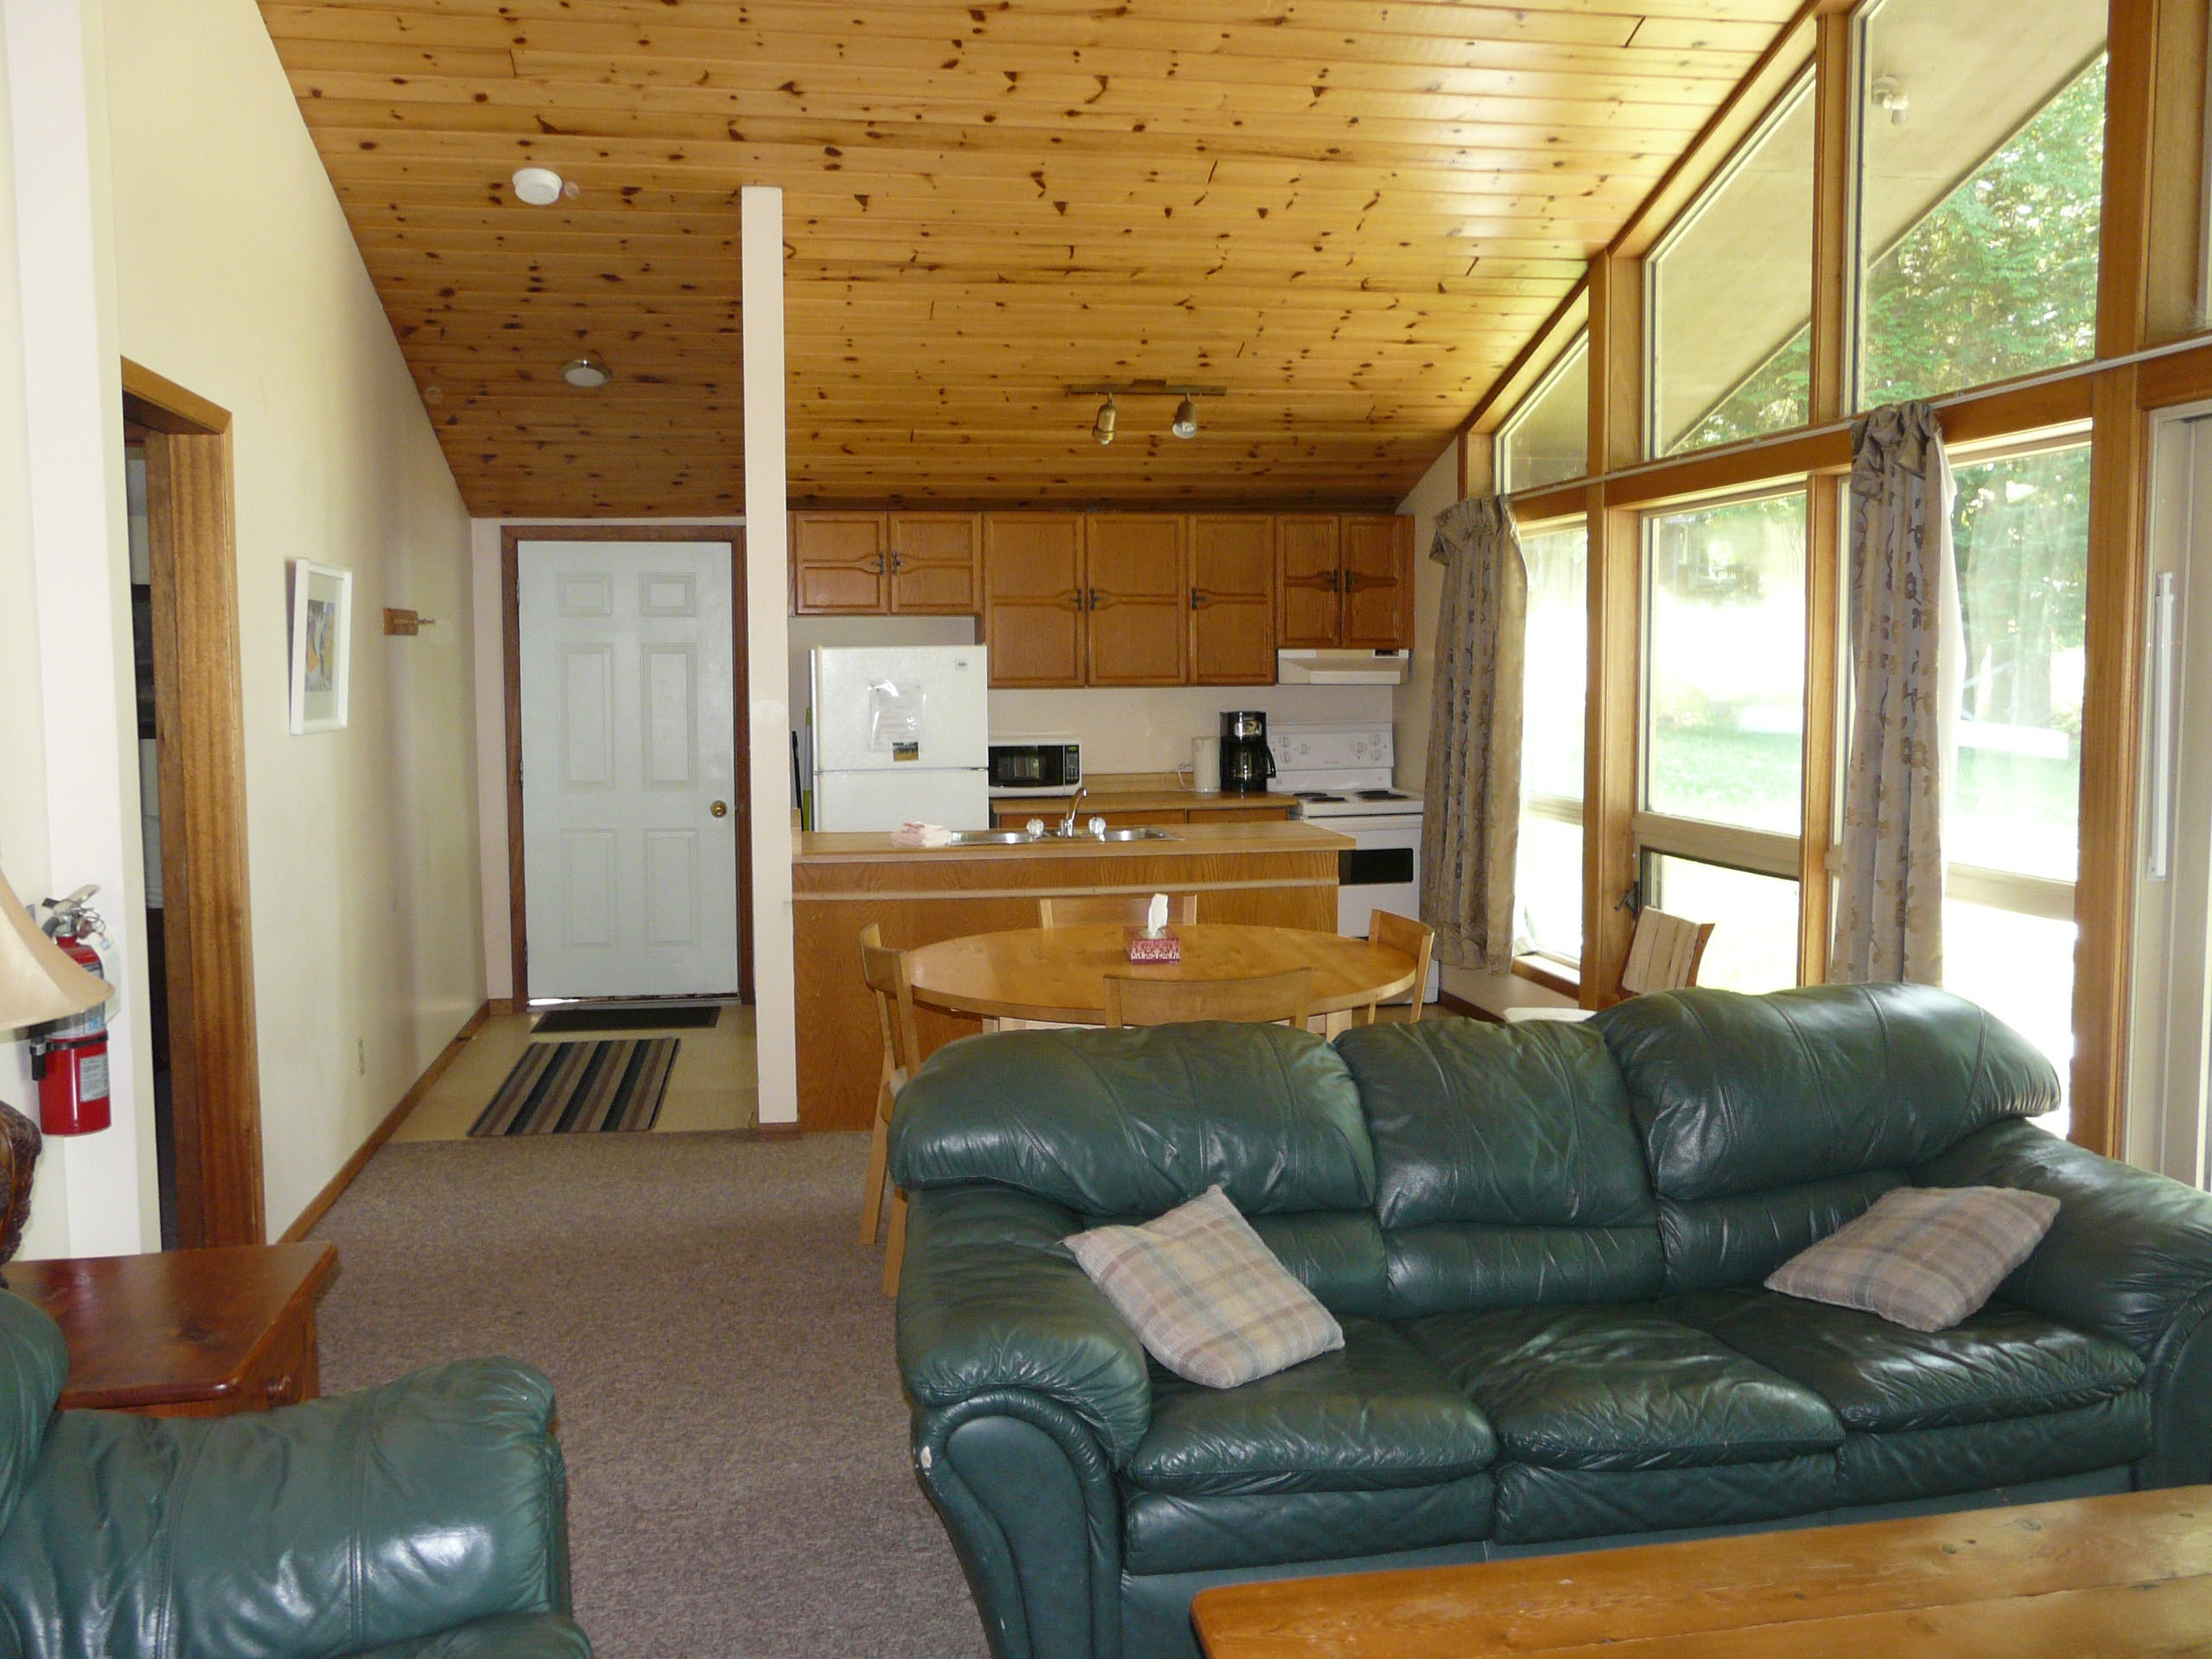 Family vacation cottage rentals nestled in the woods on beautiful Walker Lake in Muskoka near Huntsville and Algonquin Park